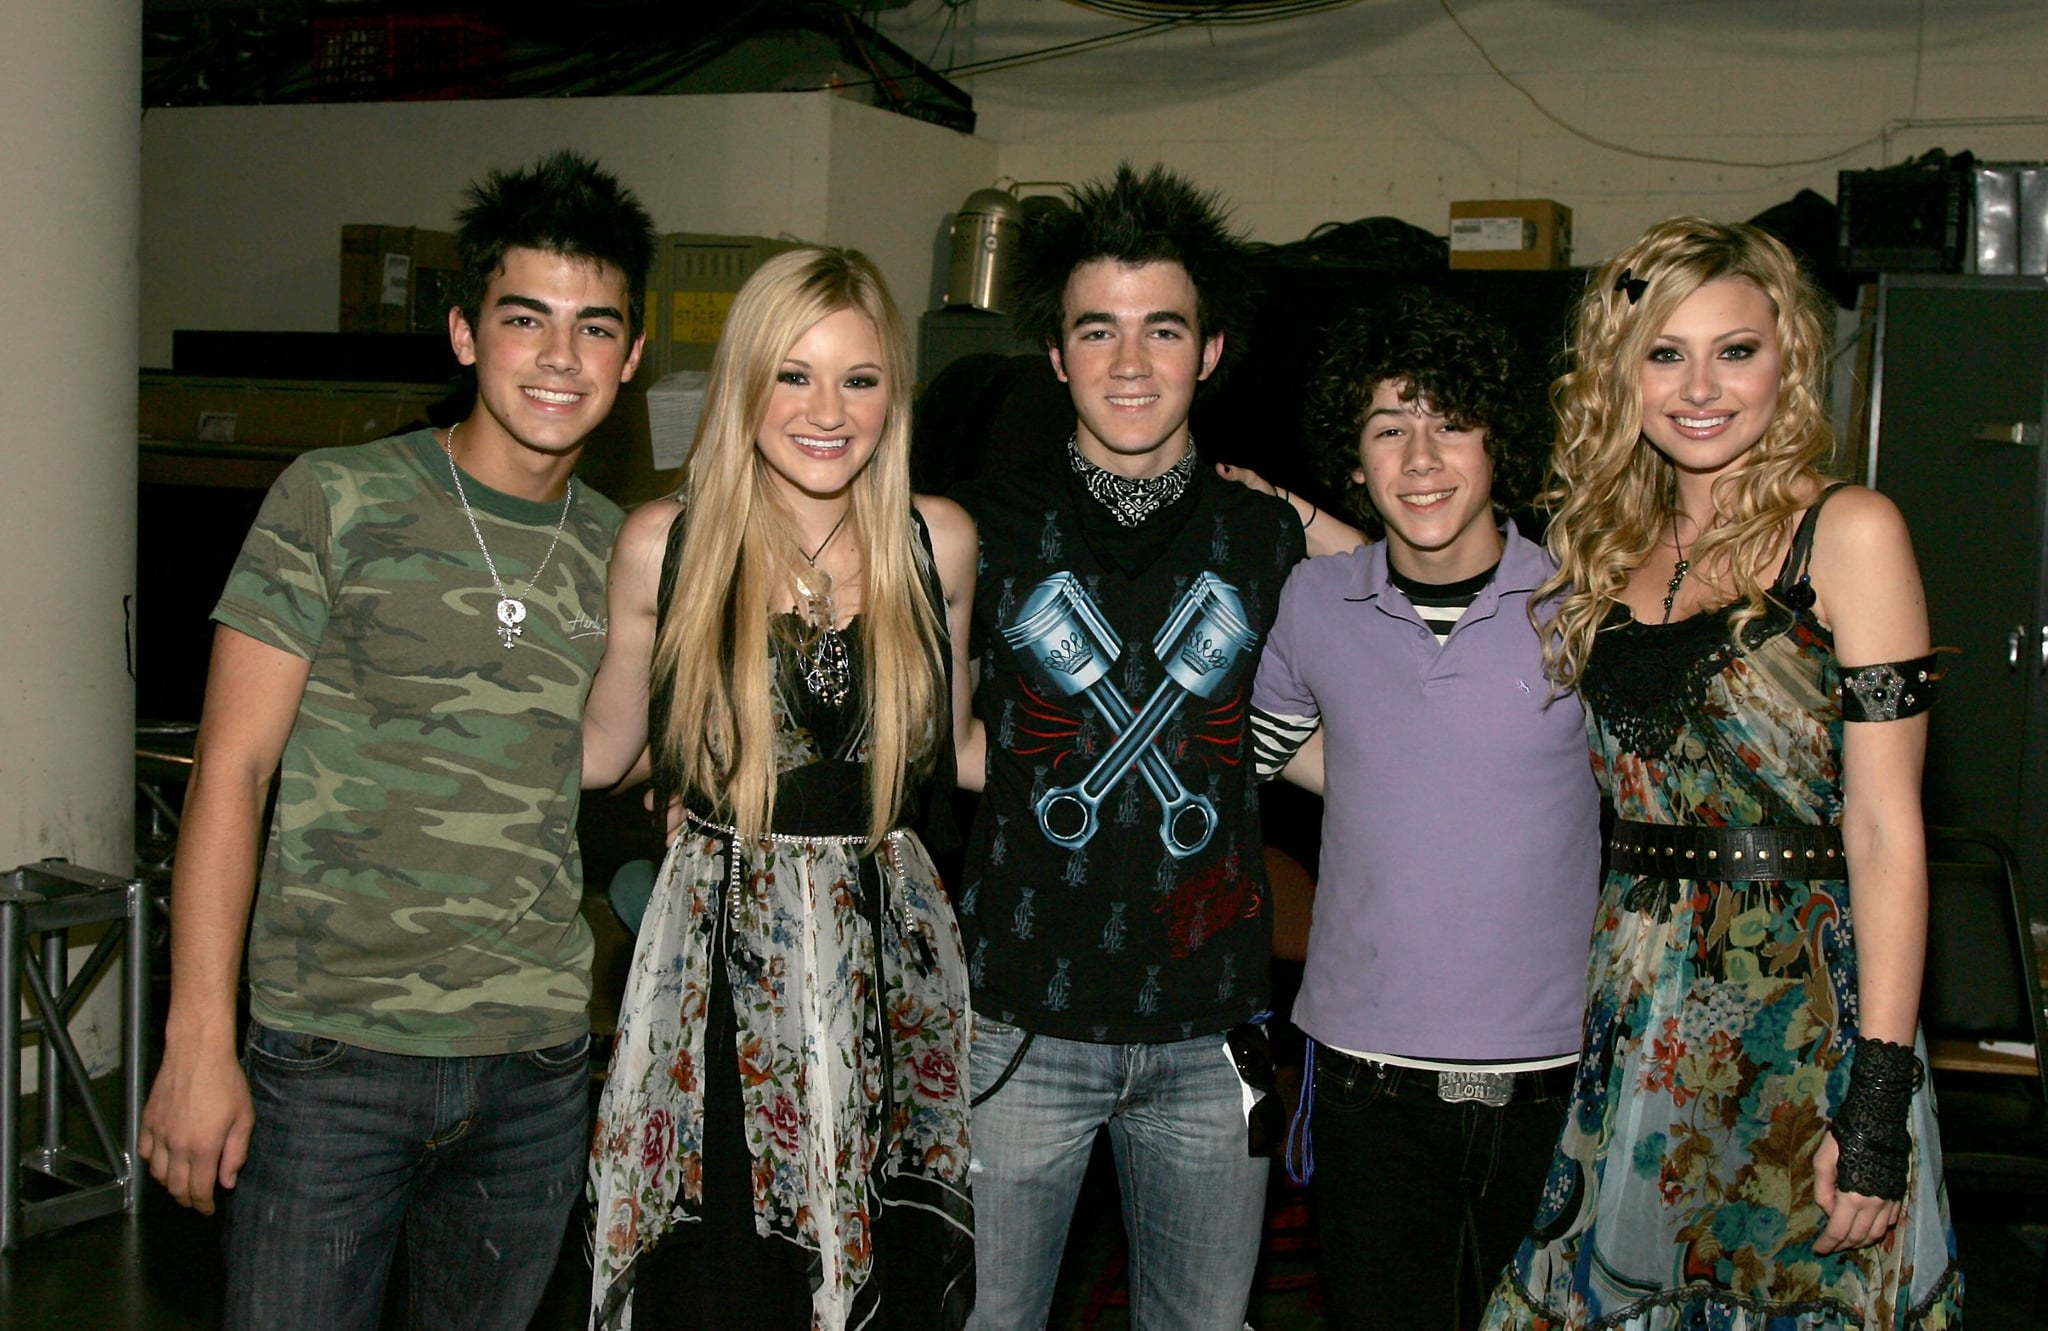 ANAHEIM, CA - JULY 22:  (L-R) Joseph Jonas, AJ Michalka, Kevin Jonas, Nicholas Jonas and Aly Michalka pose backstage at the Radio Disney Totally 10 Birthday Concert held at the Arrowhead Pond of Anaheim on July 22, 2006 in Anaheim, California.  (Photo by Frazer Harrison/Getty Images for Radio Disney)